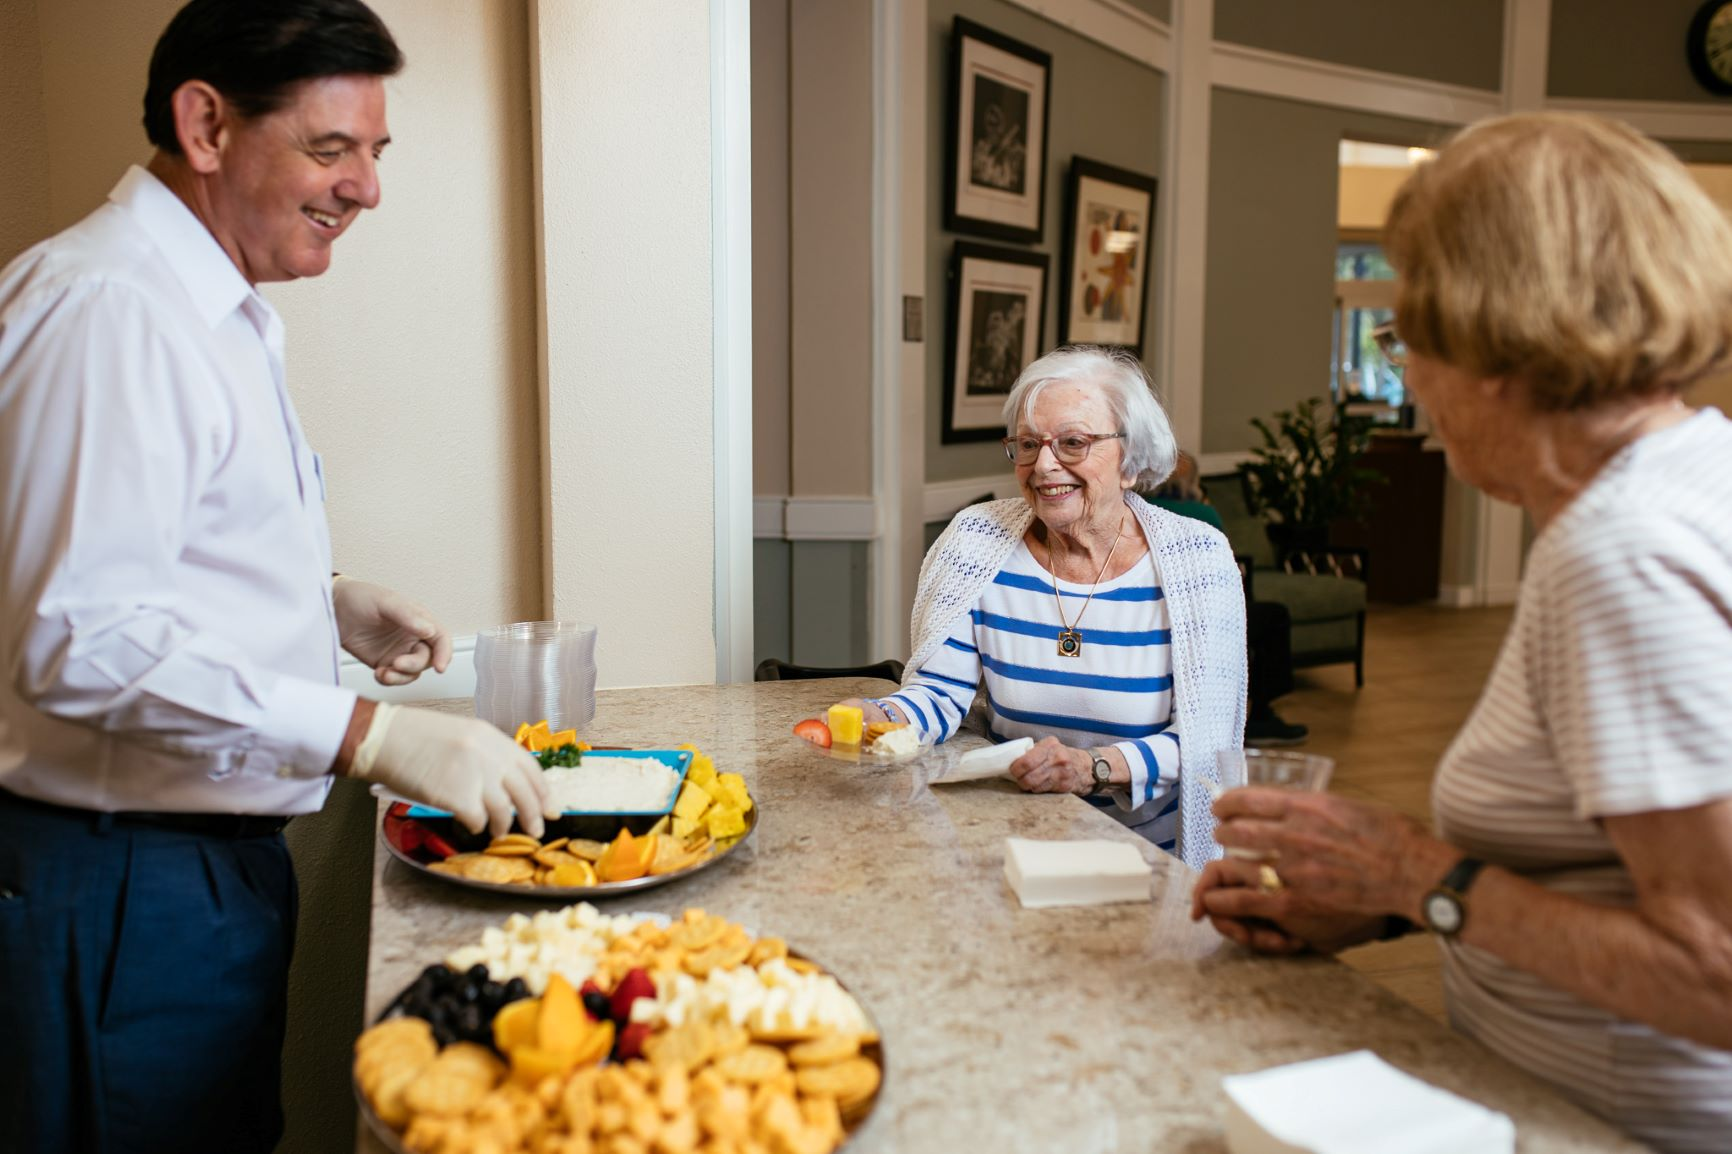 Eating Well: 5 Facts About Senior Nutrition